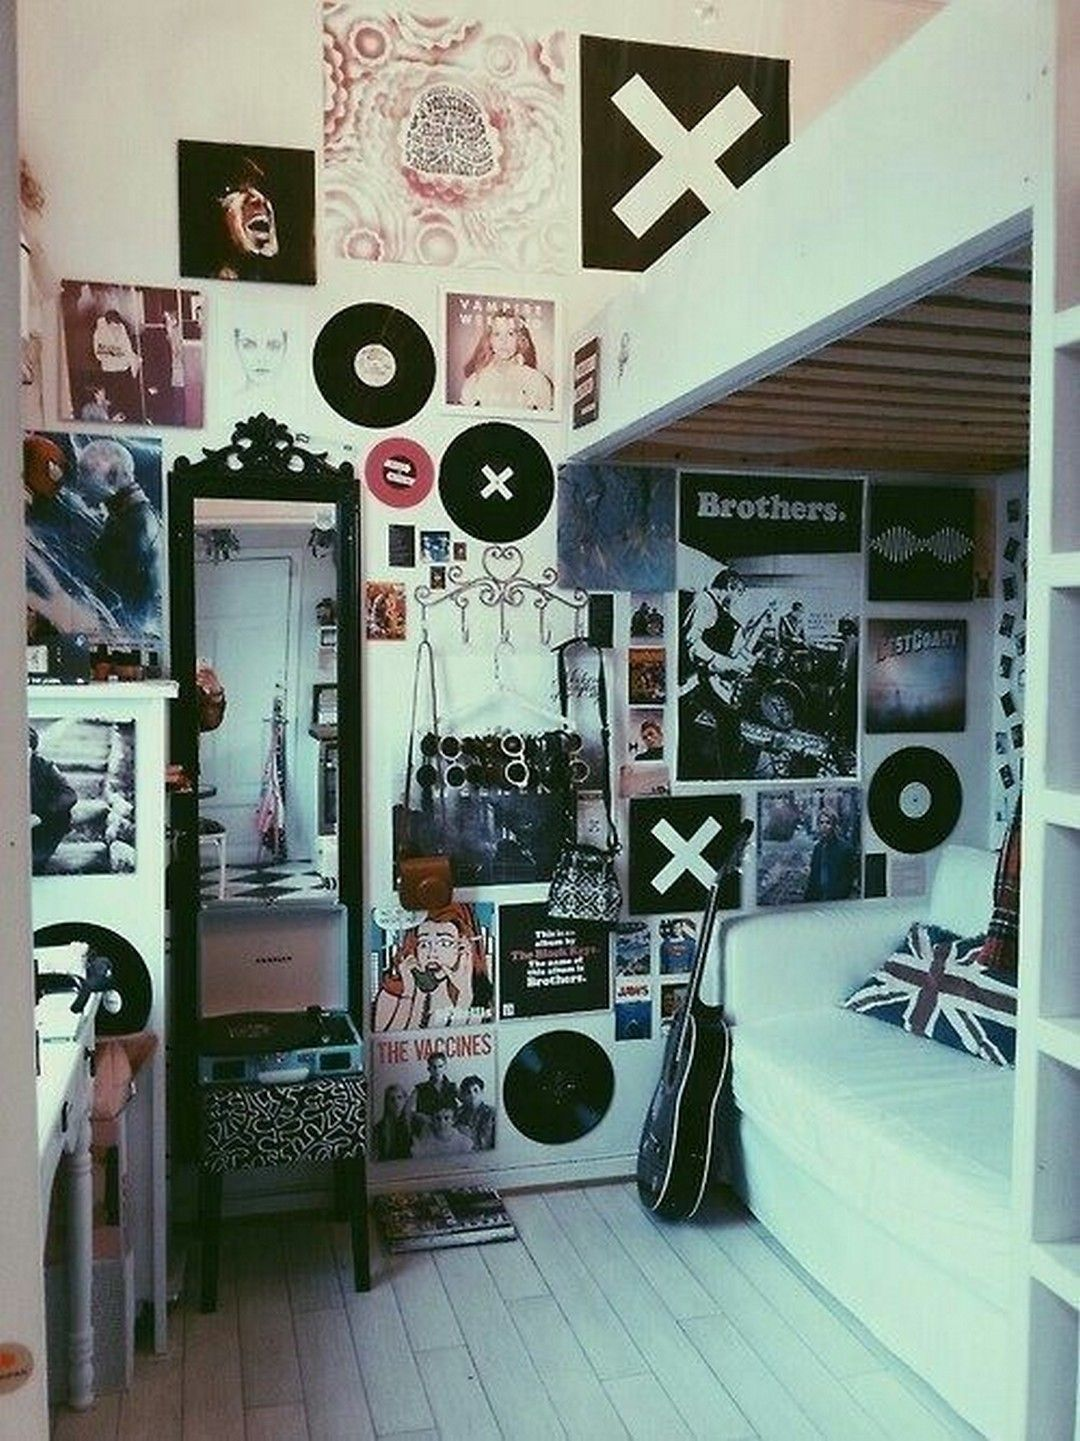 Pin By Anna Stavia On Renovation Creative Ideas Hipster Bedroom Grunge Bedroom Room Goals